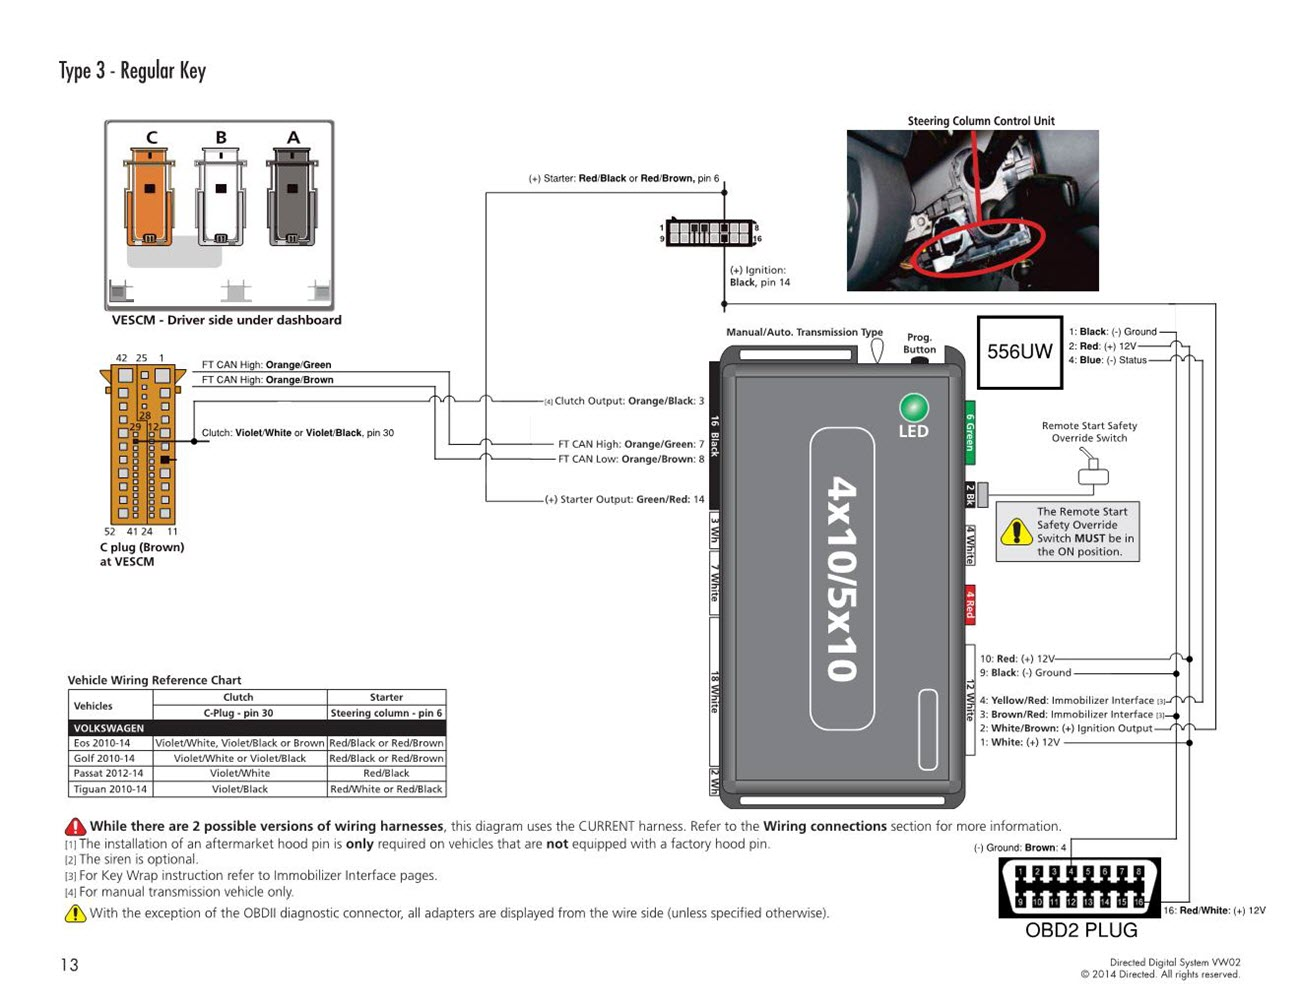 Name: 4x10 Wiring Diagram As Installed - Copy.jpg Views: 5724 Size: